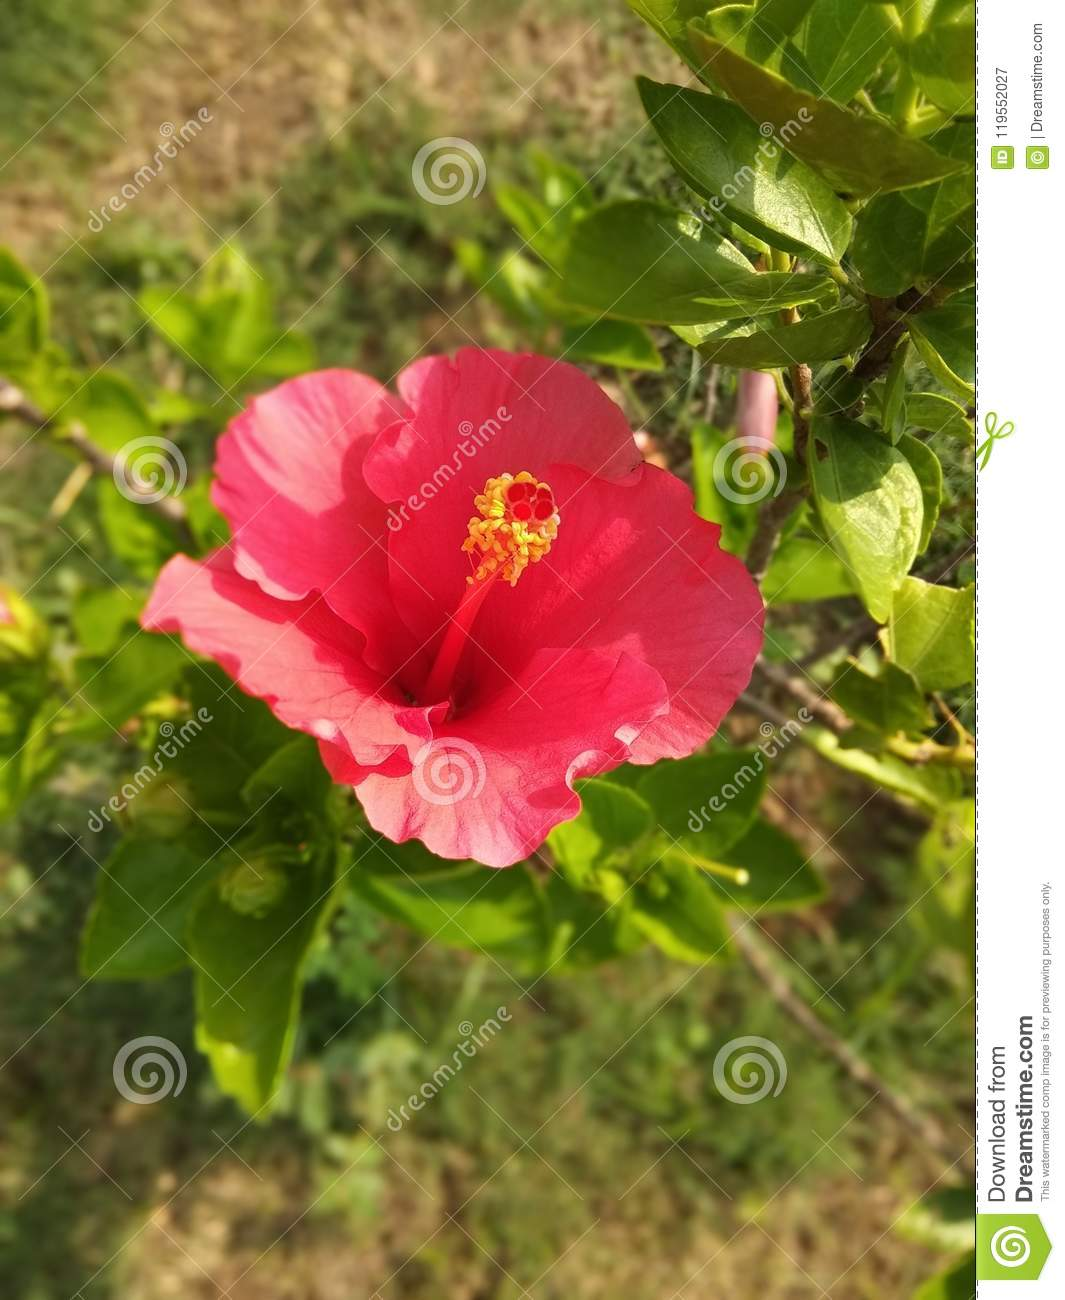 The Beautiful Red China Rose Flower And Leaves Stock Image Image